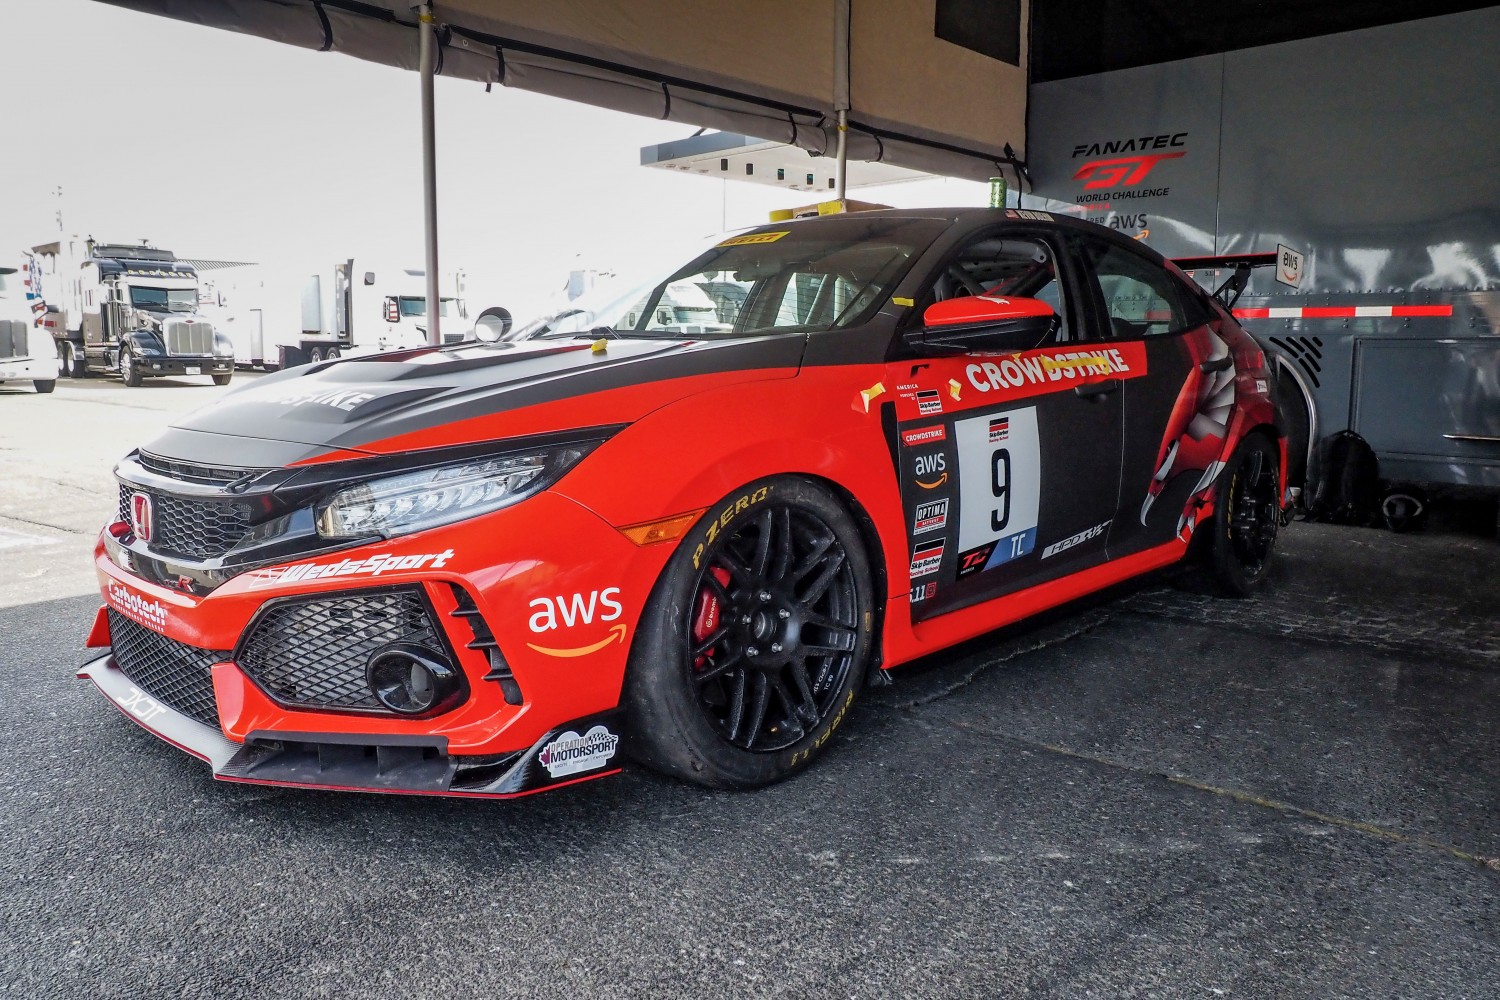 DXDT Racing Brings Full Squad to Sonoma Raceway for Season Start